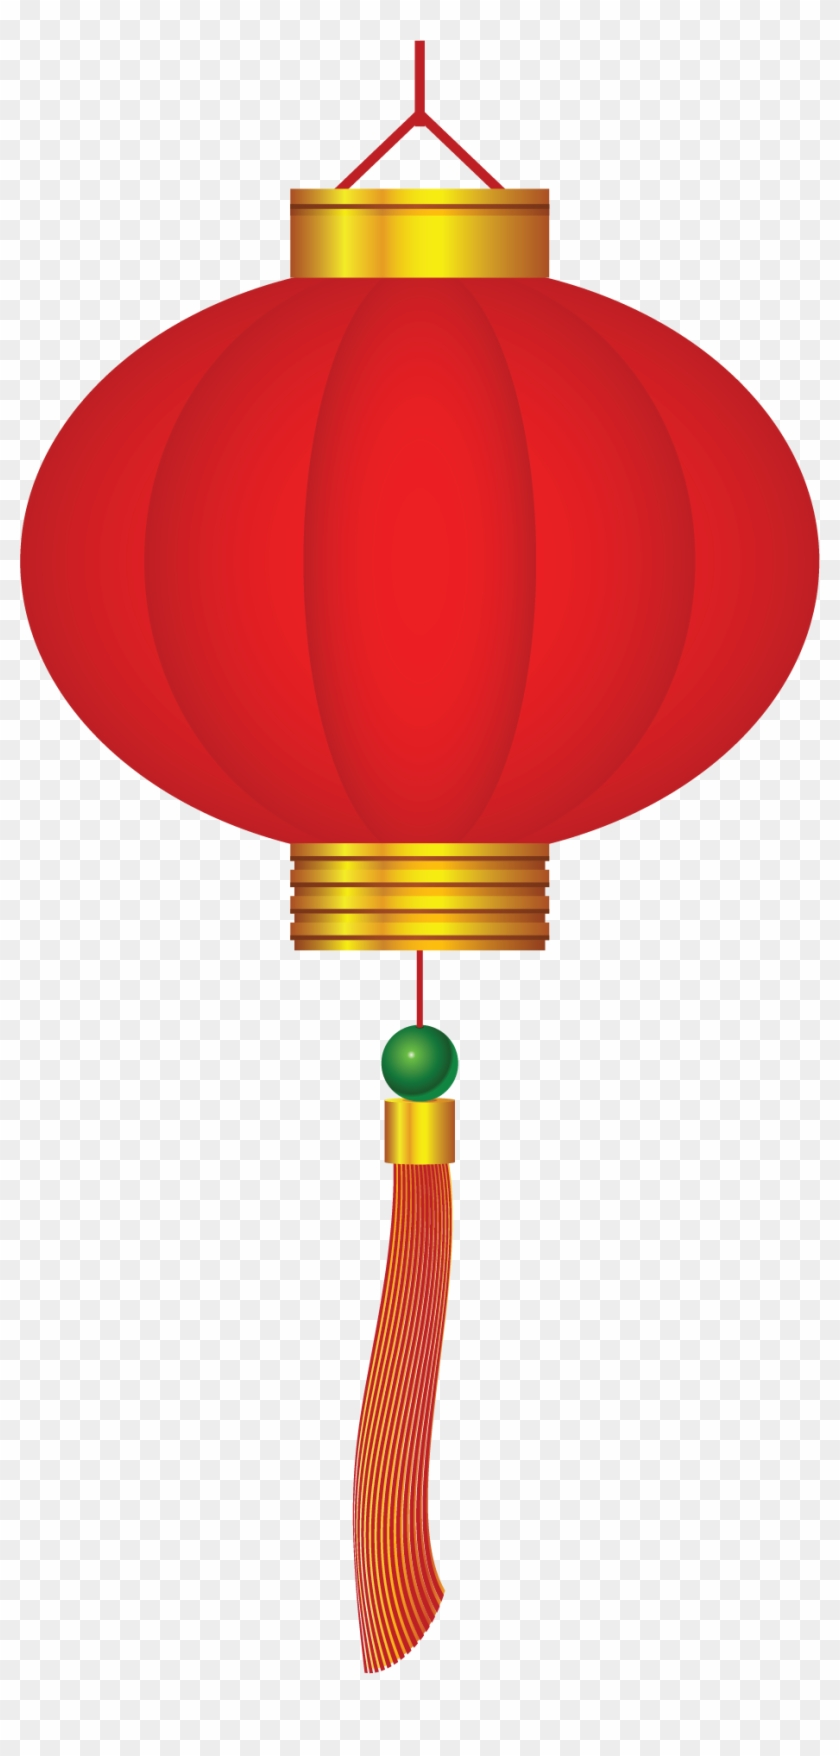 Chinese New Year Vector Free Transparent Png Clipart Images Download